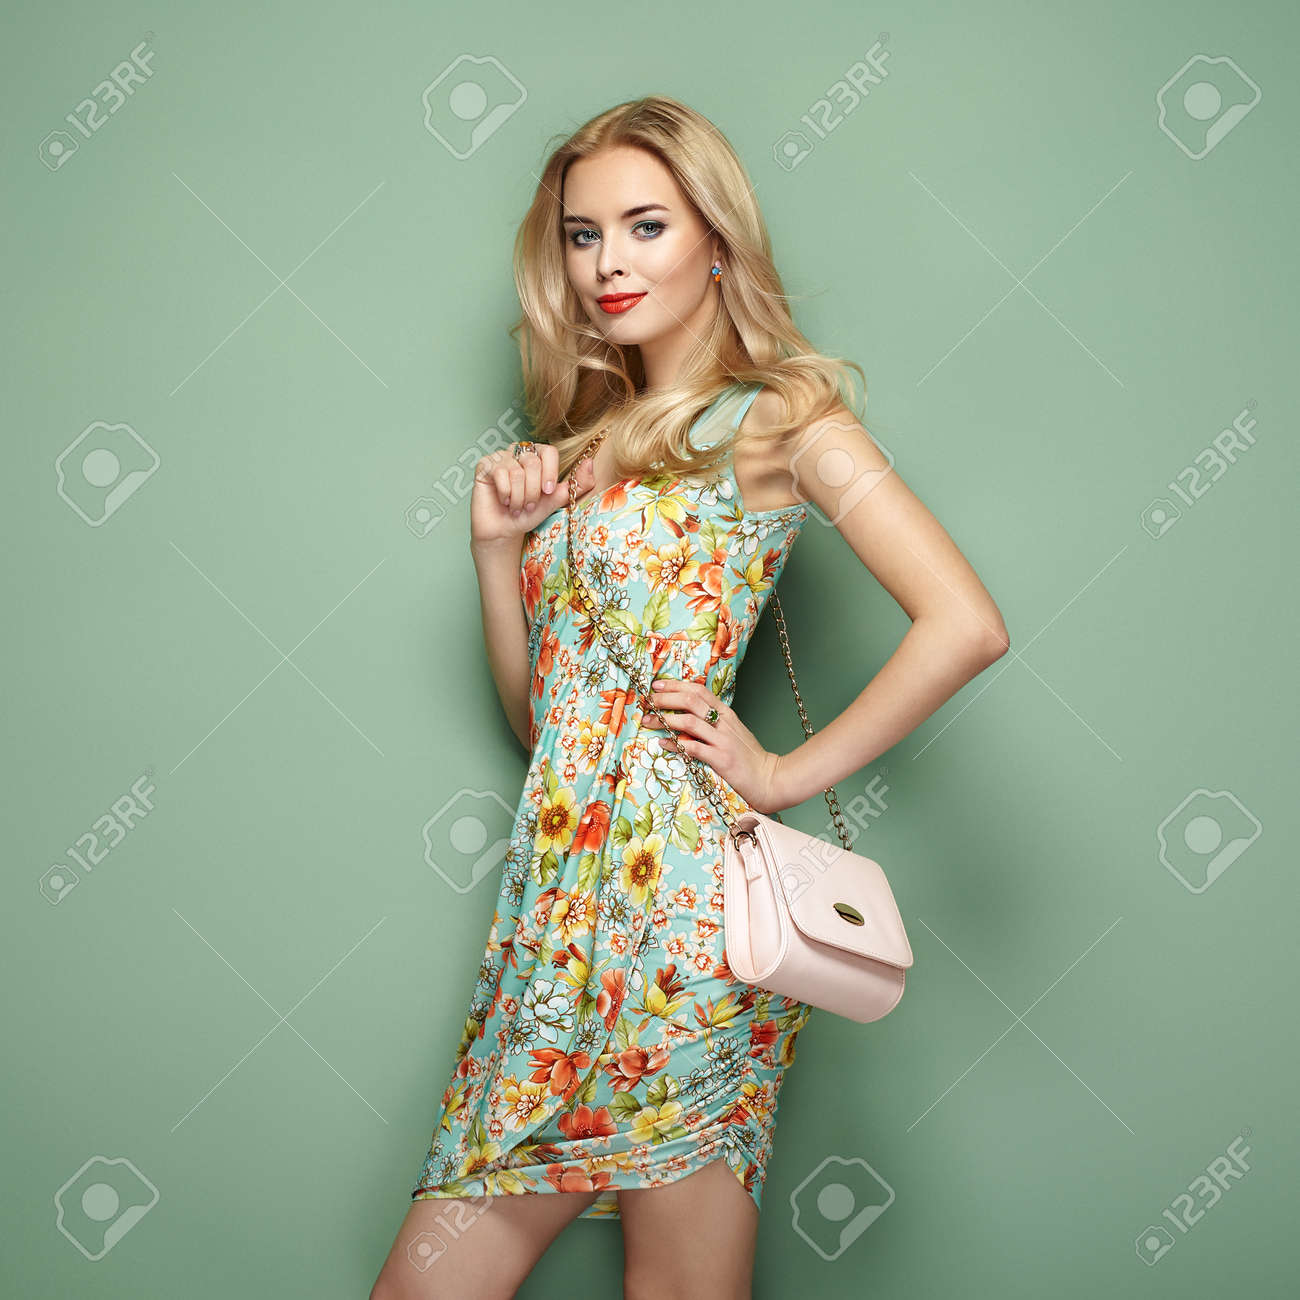 849c653ded Blonde young woman in floral summer dress. Girl posing on a green  background. Jewelry